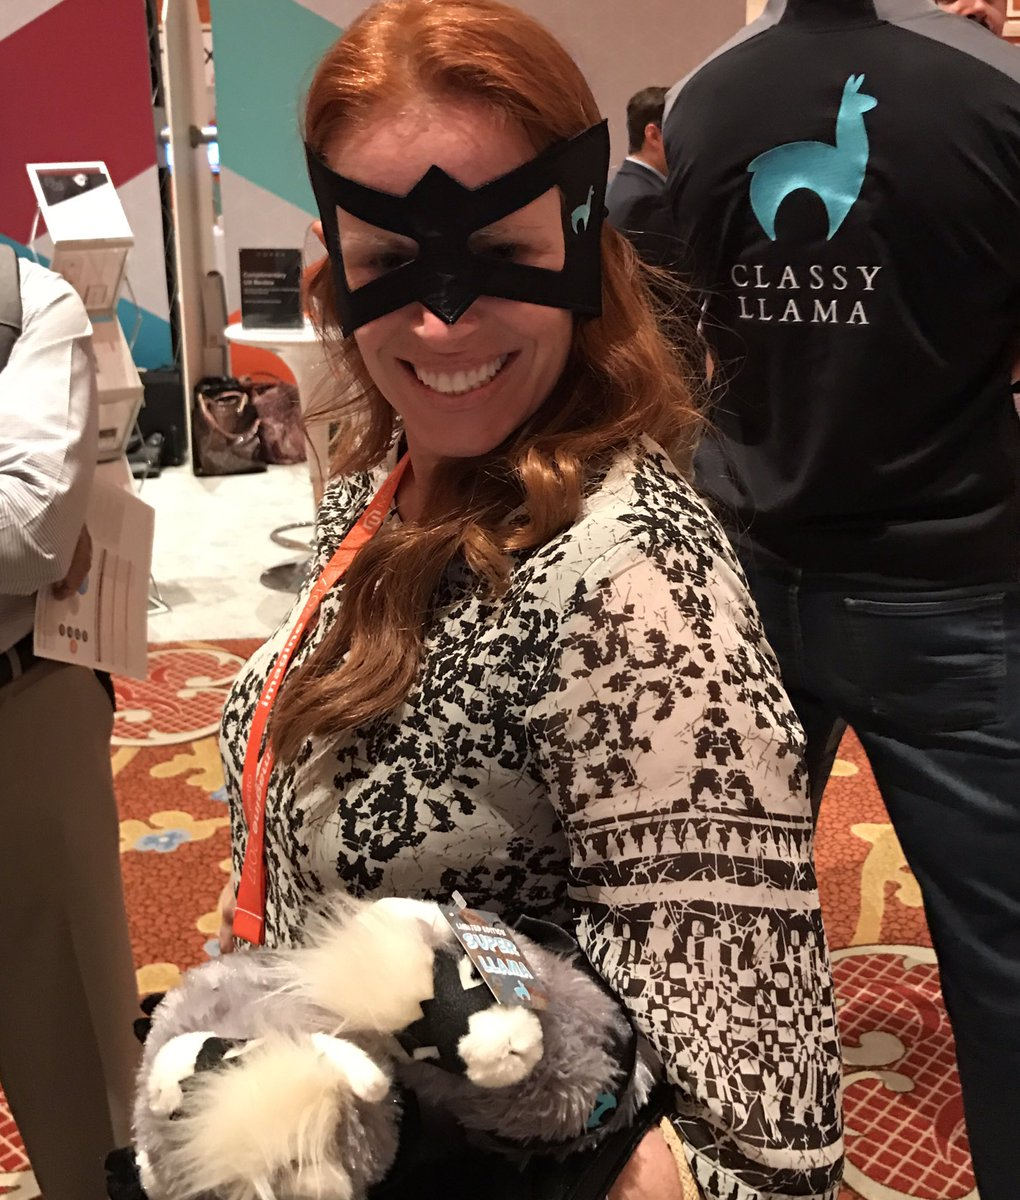 classyllama: Amy from @magento has been recruited as our newest #superllama at #Magentoimagine https://t.co/dcc2qU66Xf